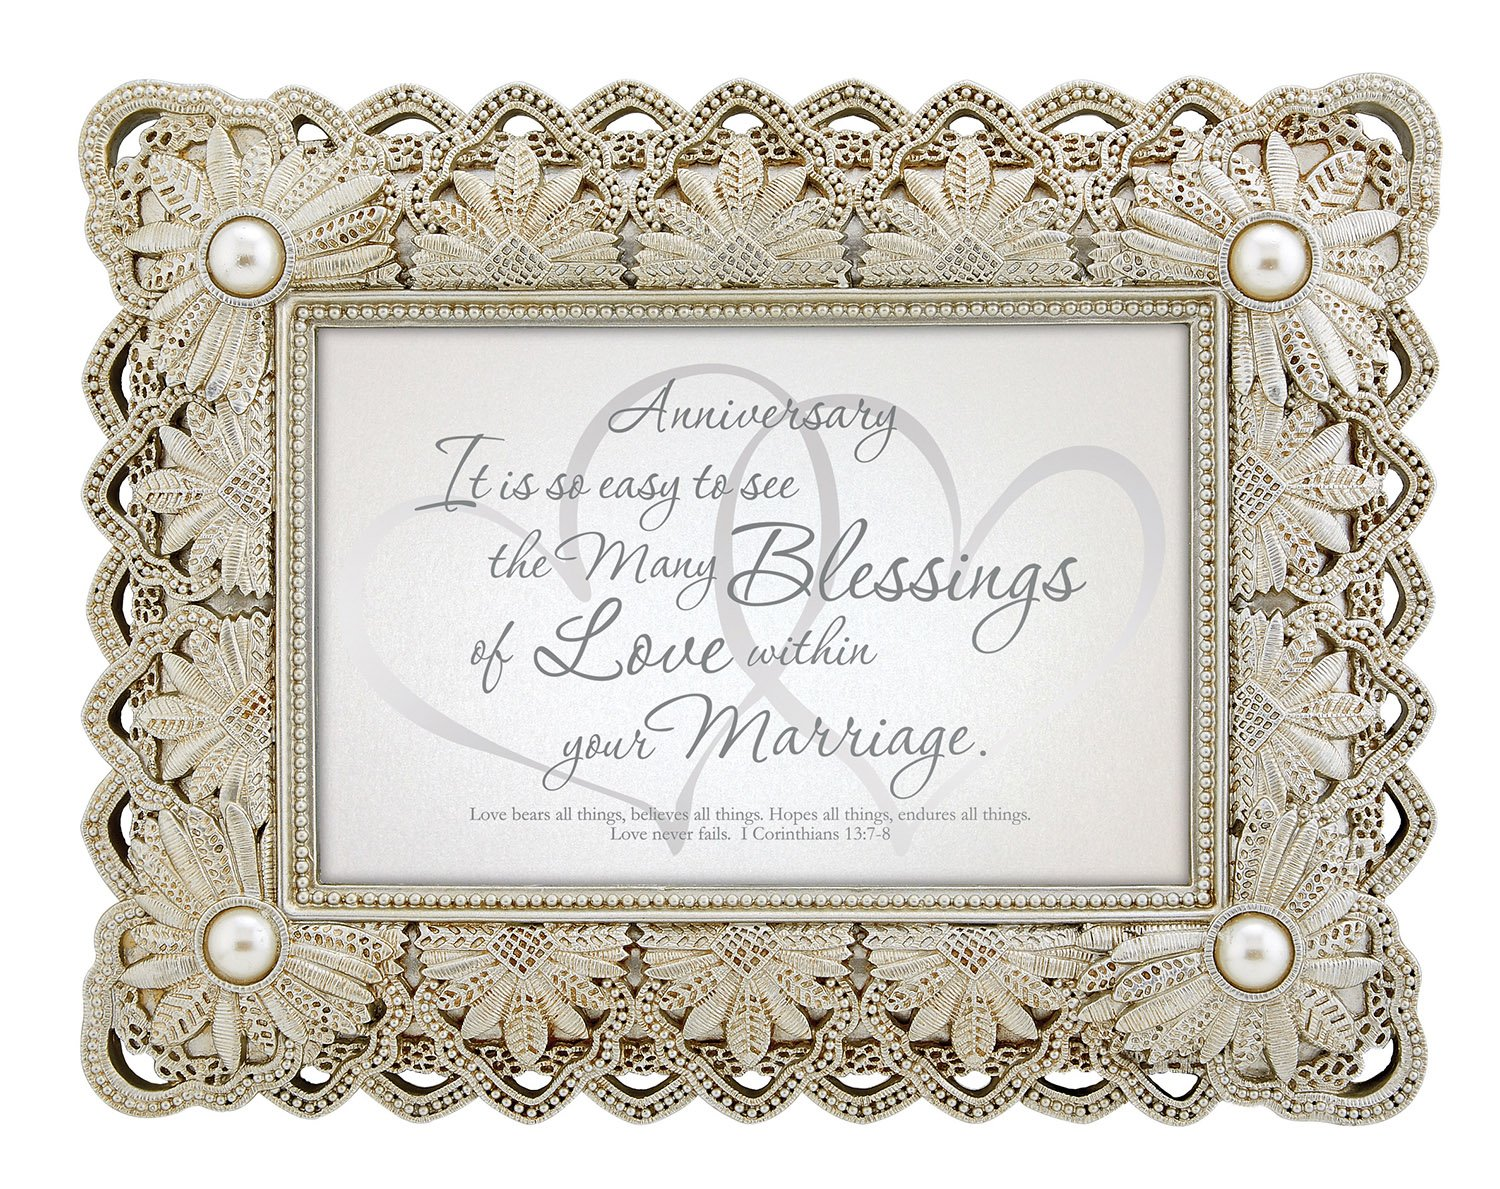 CB Gift Heartfelt Collection 25th Anniversary Framed Tabletop Gift YS343